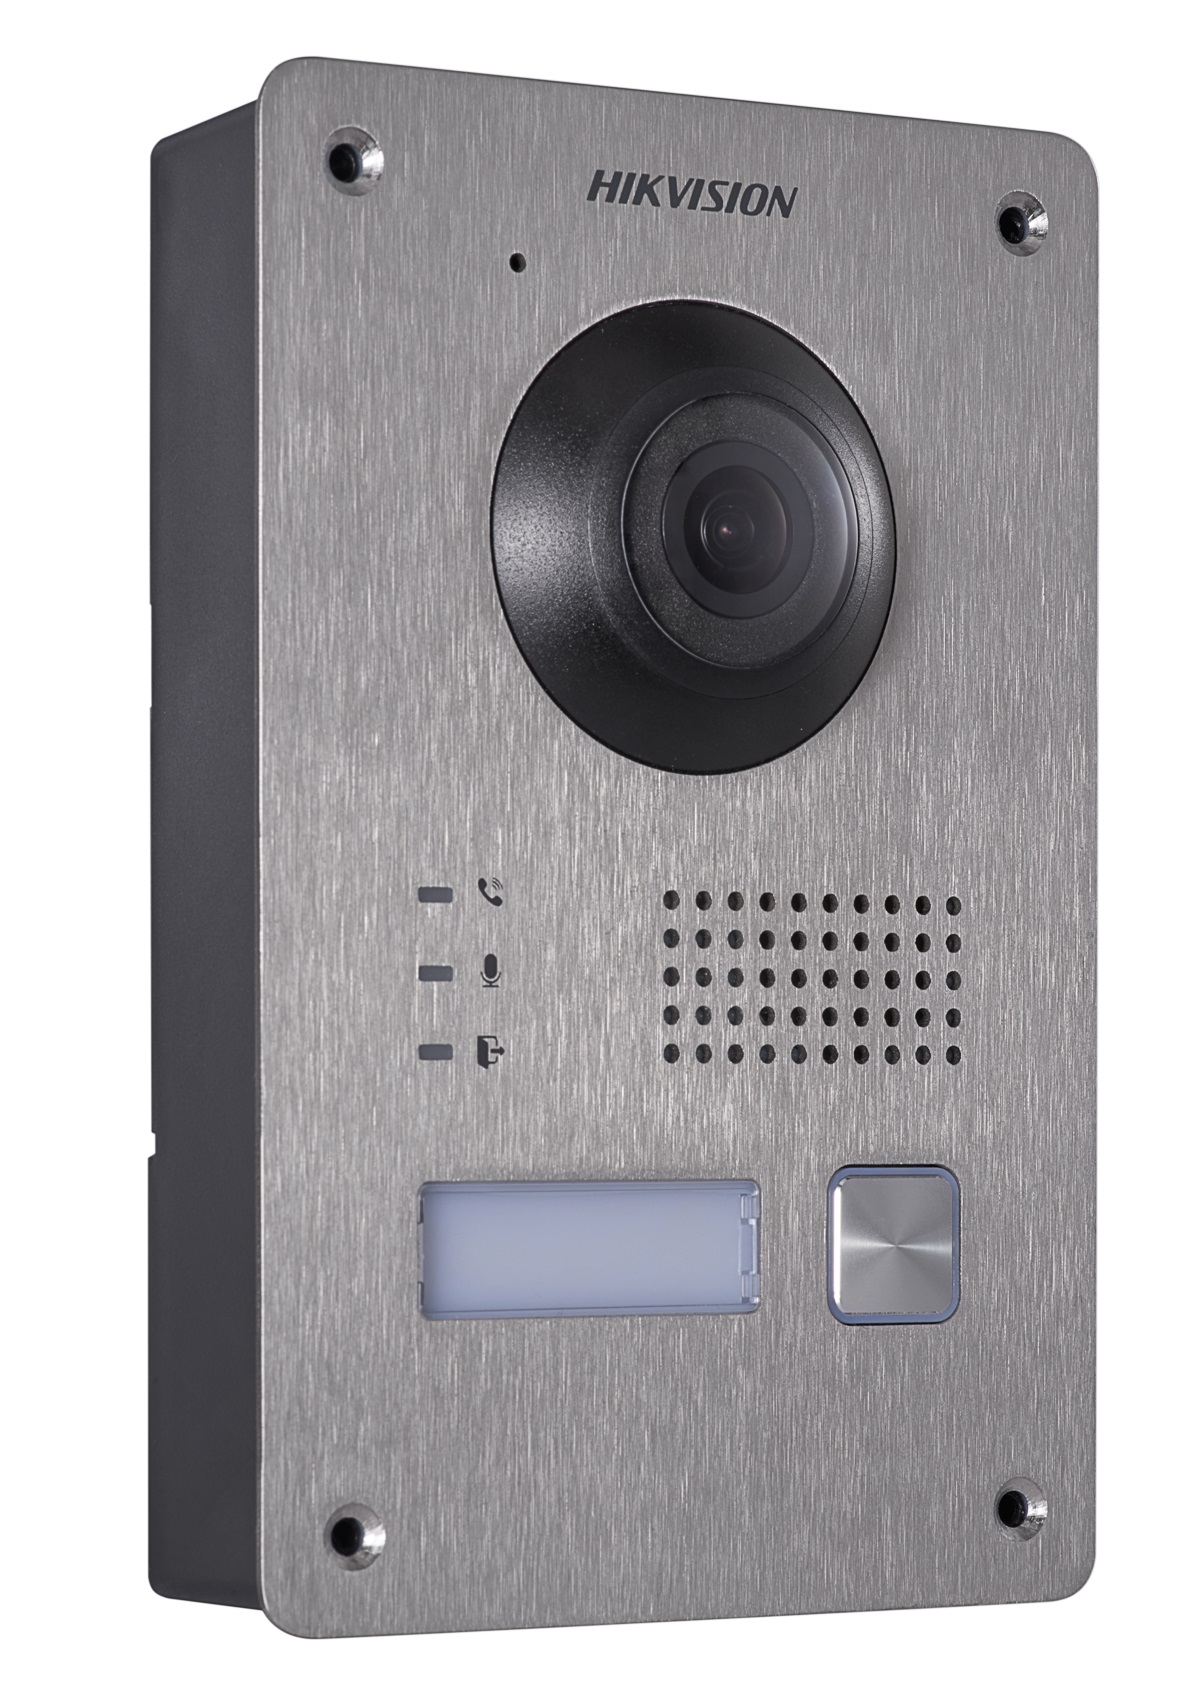 HIKVISION DS-KV8103-IME2 2-Wire door station